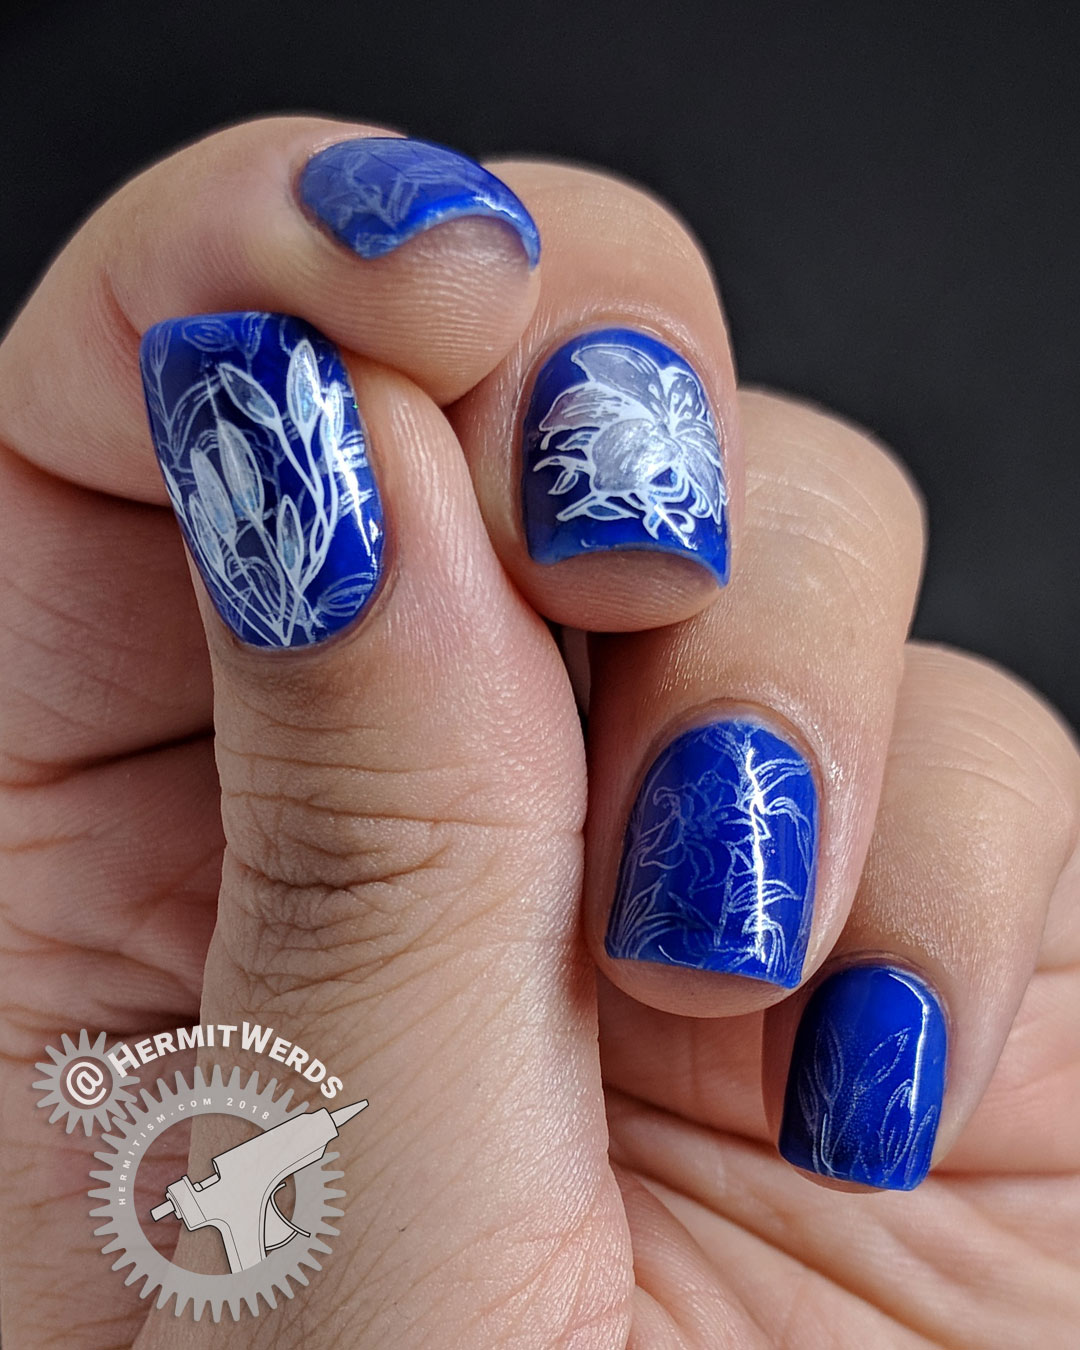 Blue Lily - Hermit Werds - cobalt blue nail art with pearly white lily nail stamping and flower decal